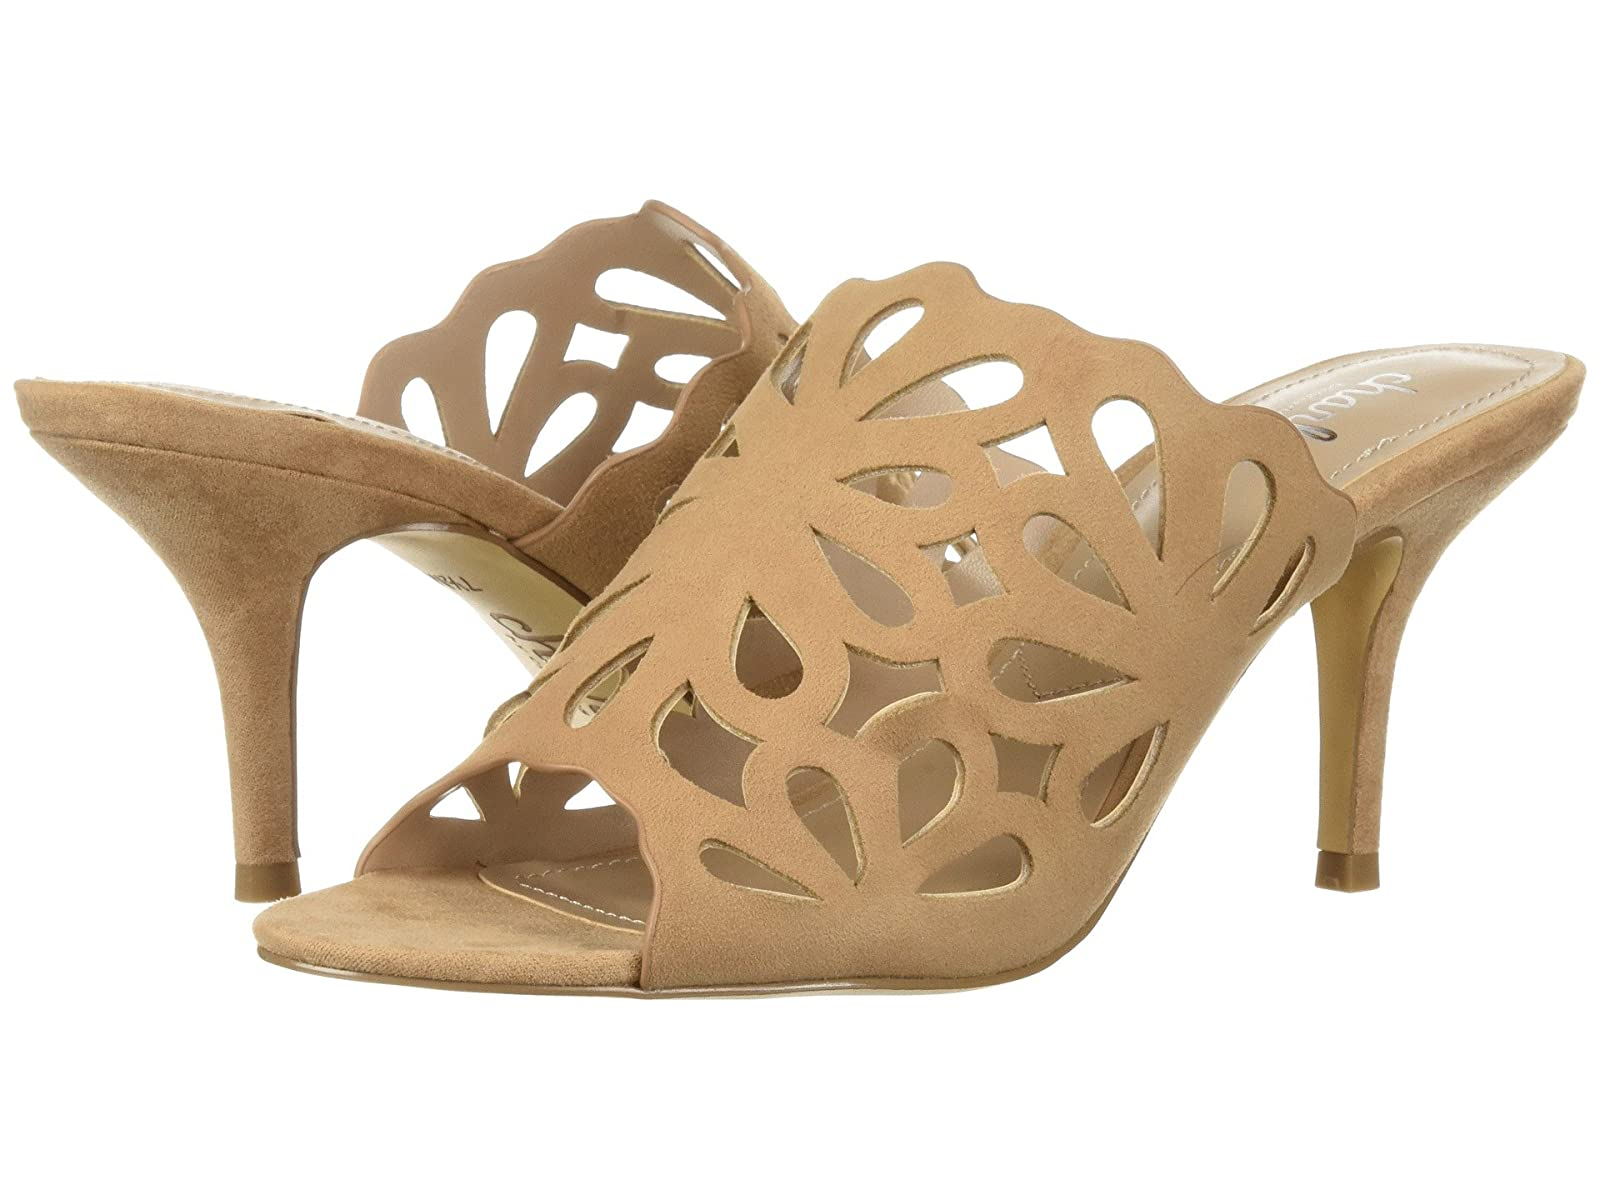 Charles by Charles David NickiCheap and distinctive eye-catching shoes